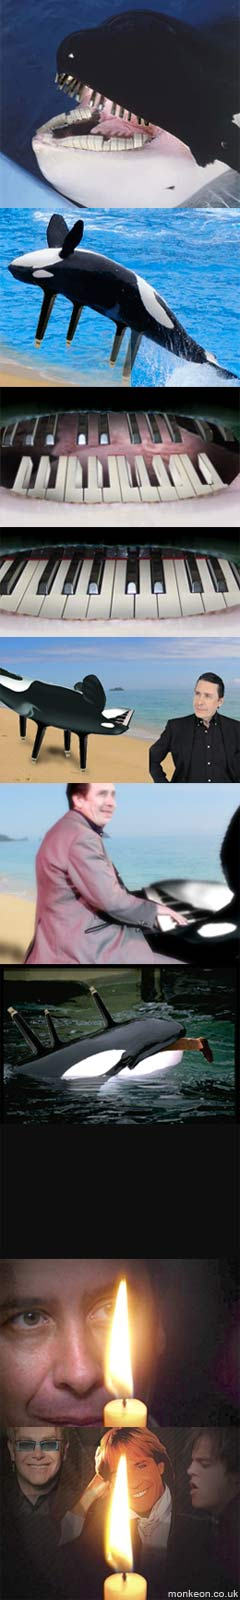 It's evolved to live off pianists